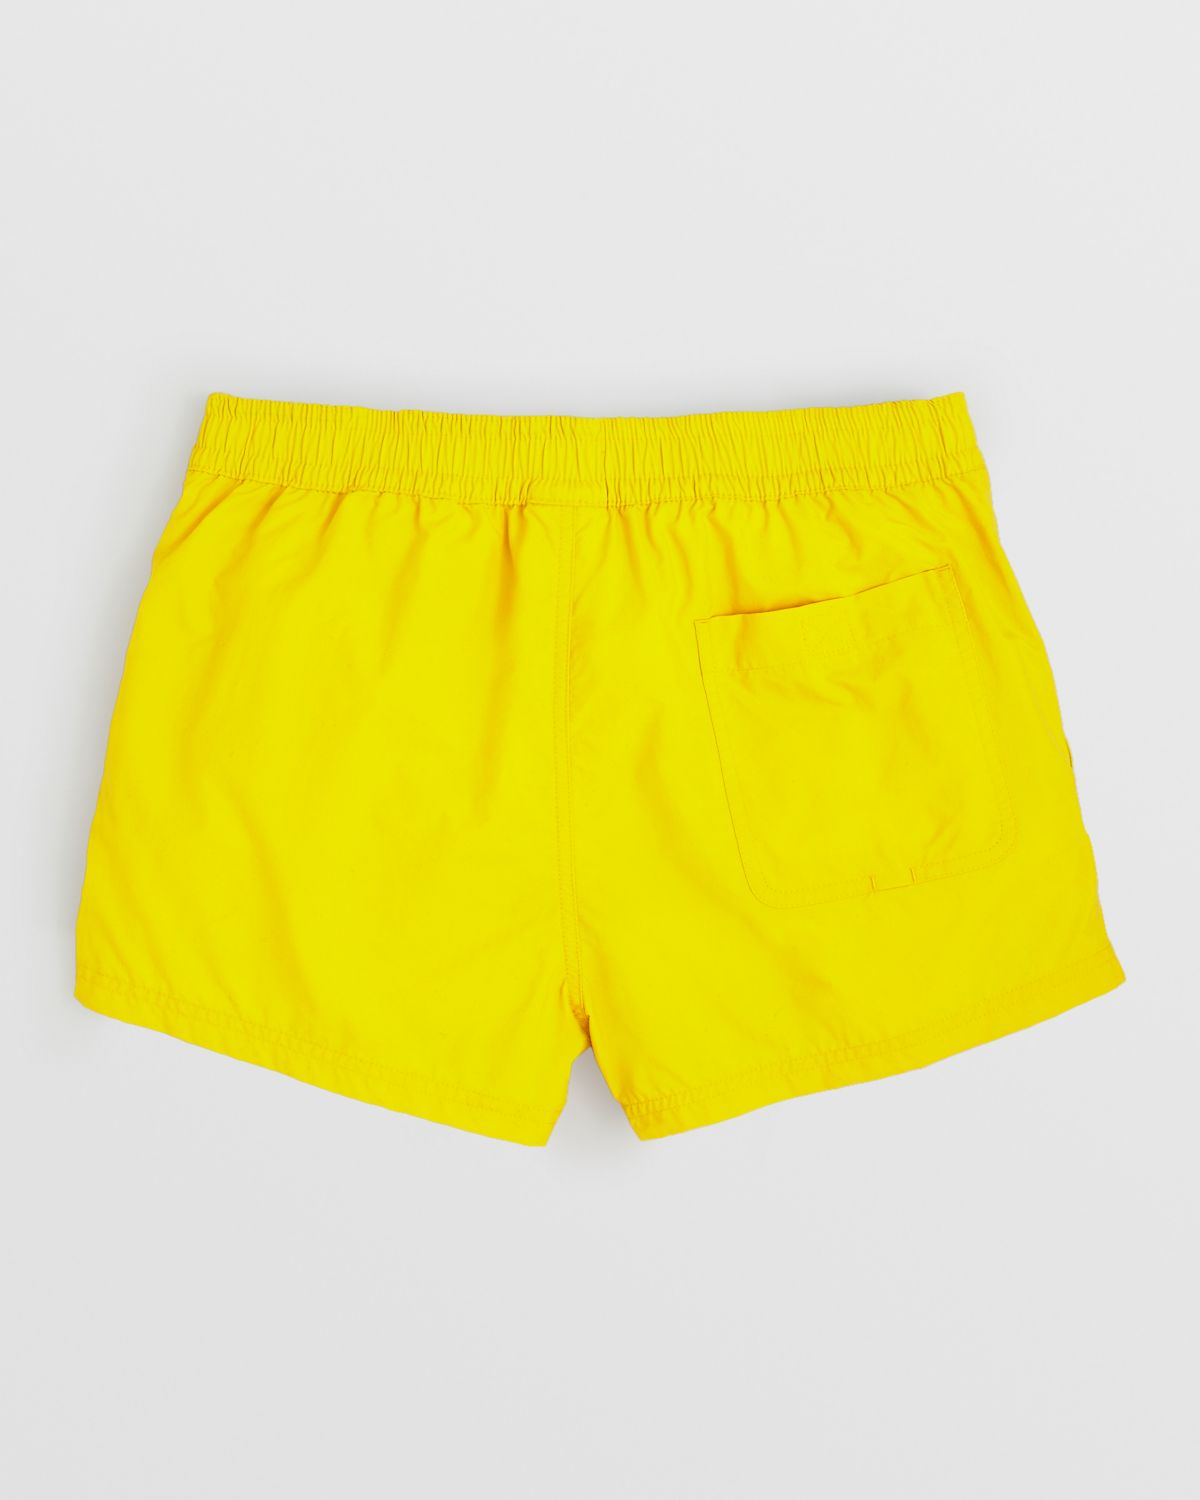 51dabab04c Lacoste Retro Swim Shorts in Yellow for Men - Lyst